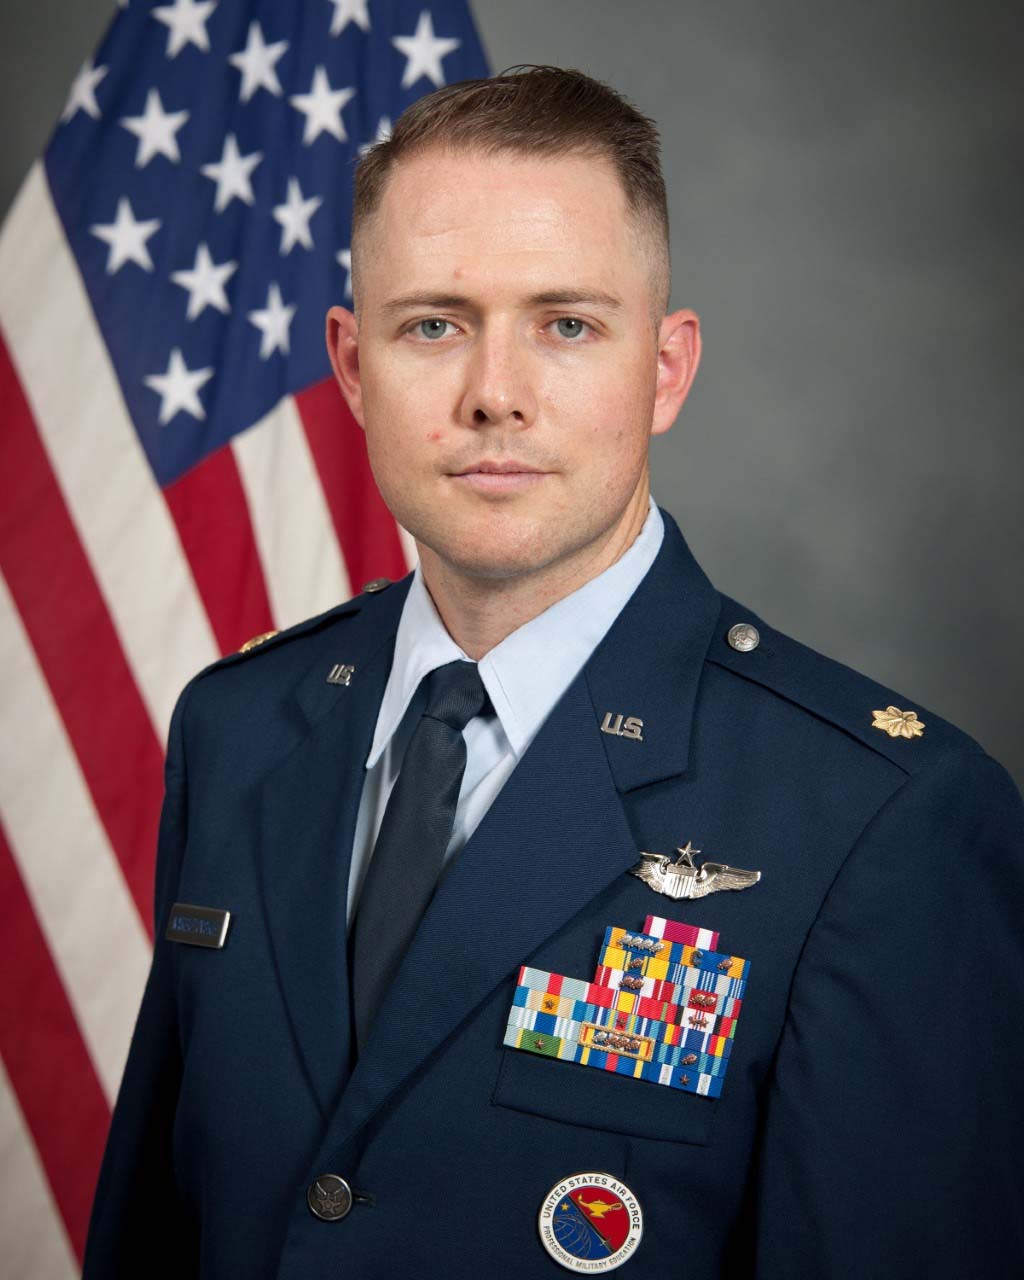 Photo of Maj Nicholas T. G. Narbutovskih, USAF